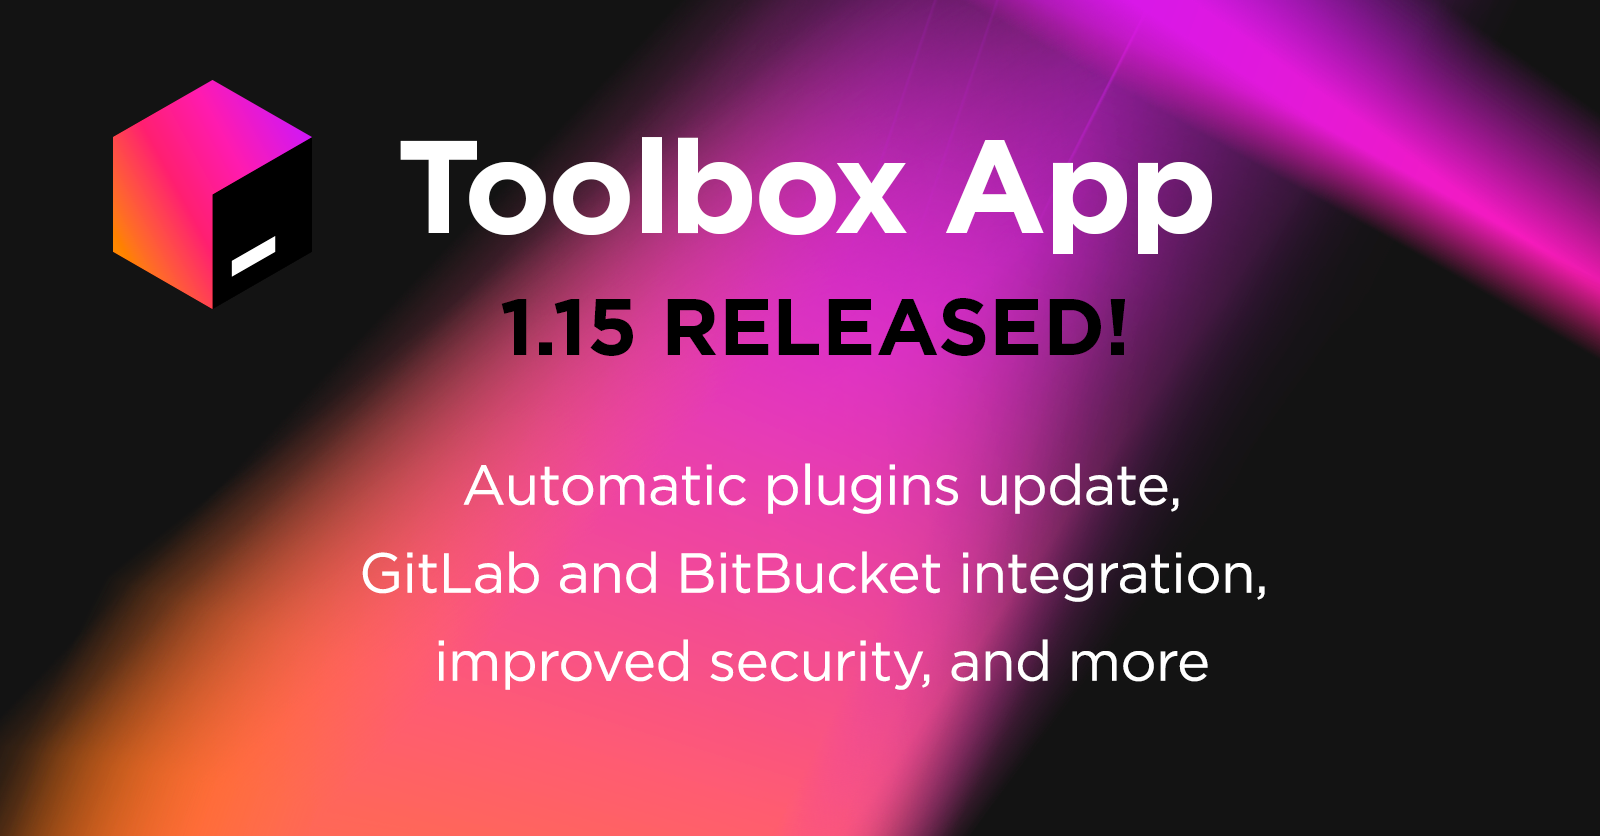 TToolbox App 1.15 is released